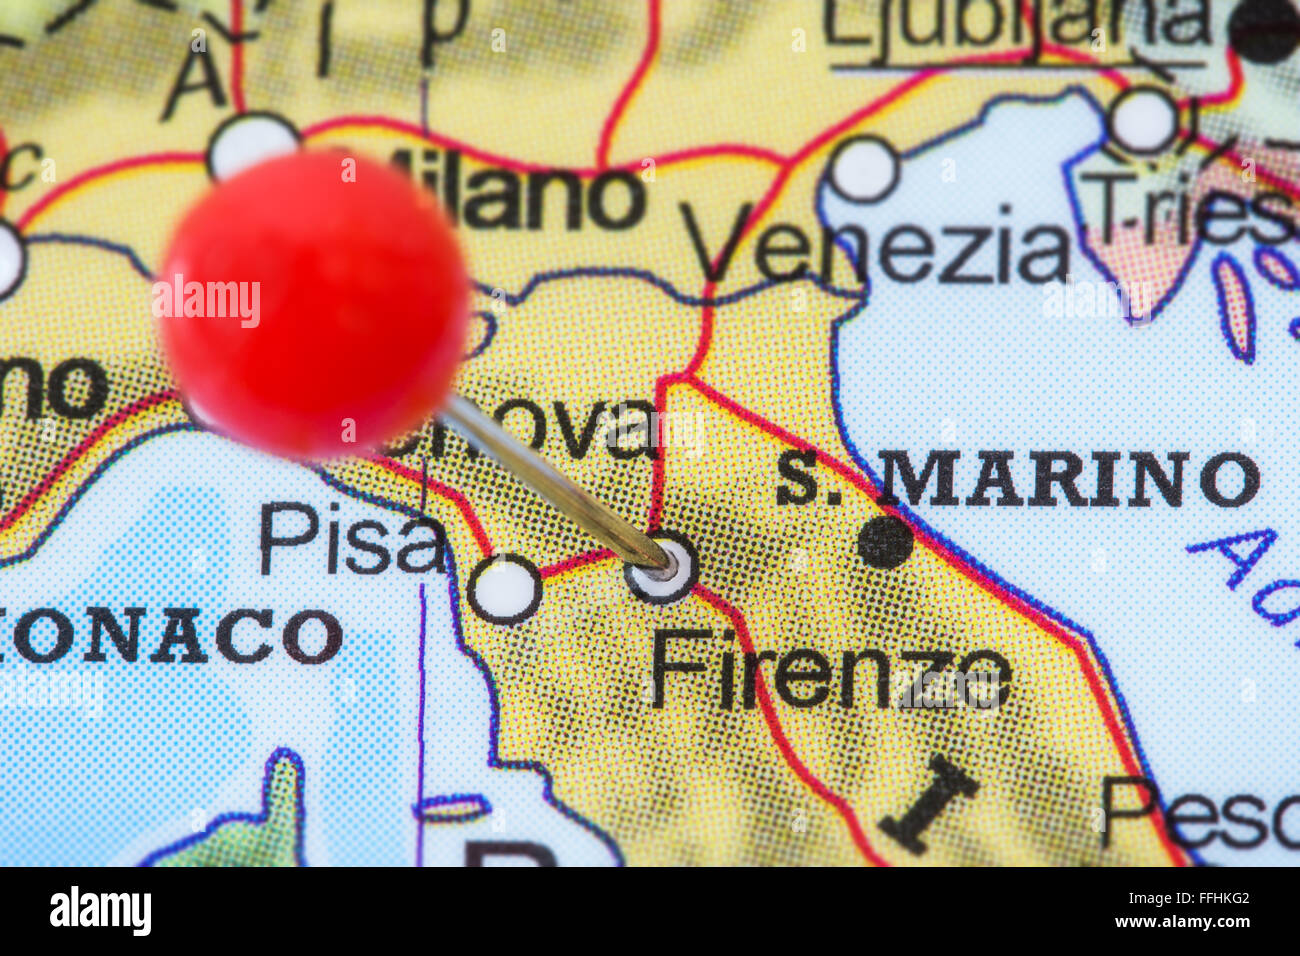 Close-up of a red pushpin in a map of Firenze (Florence), Italy ...